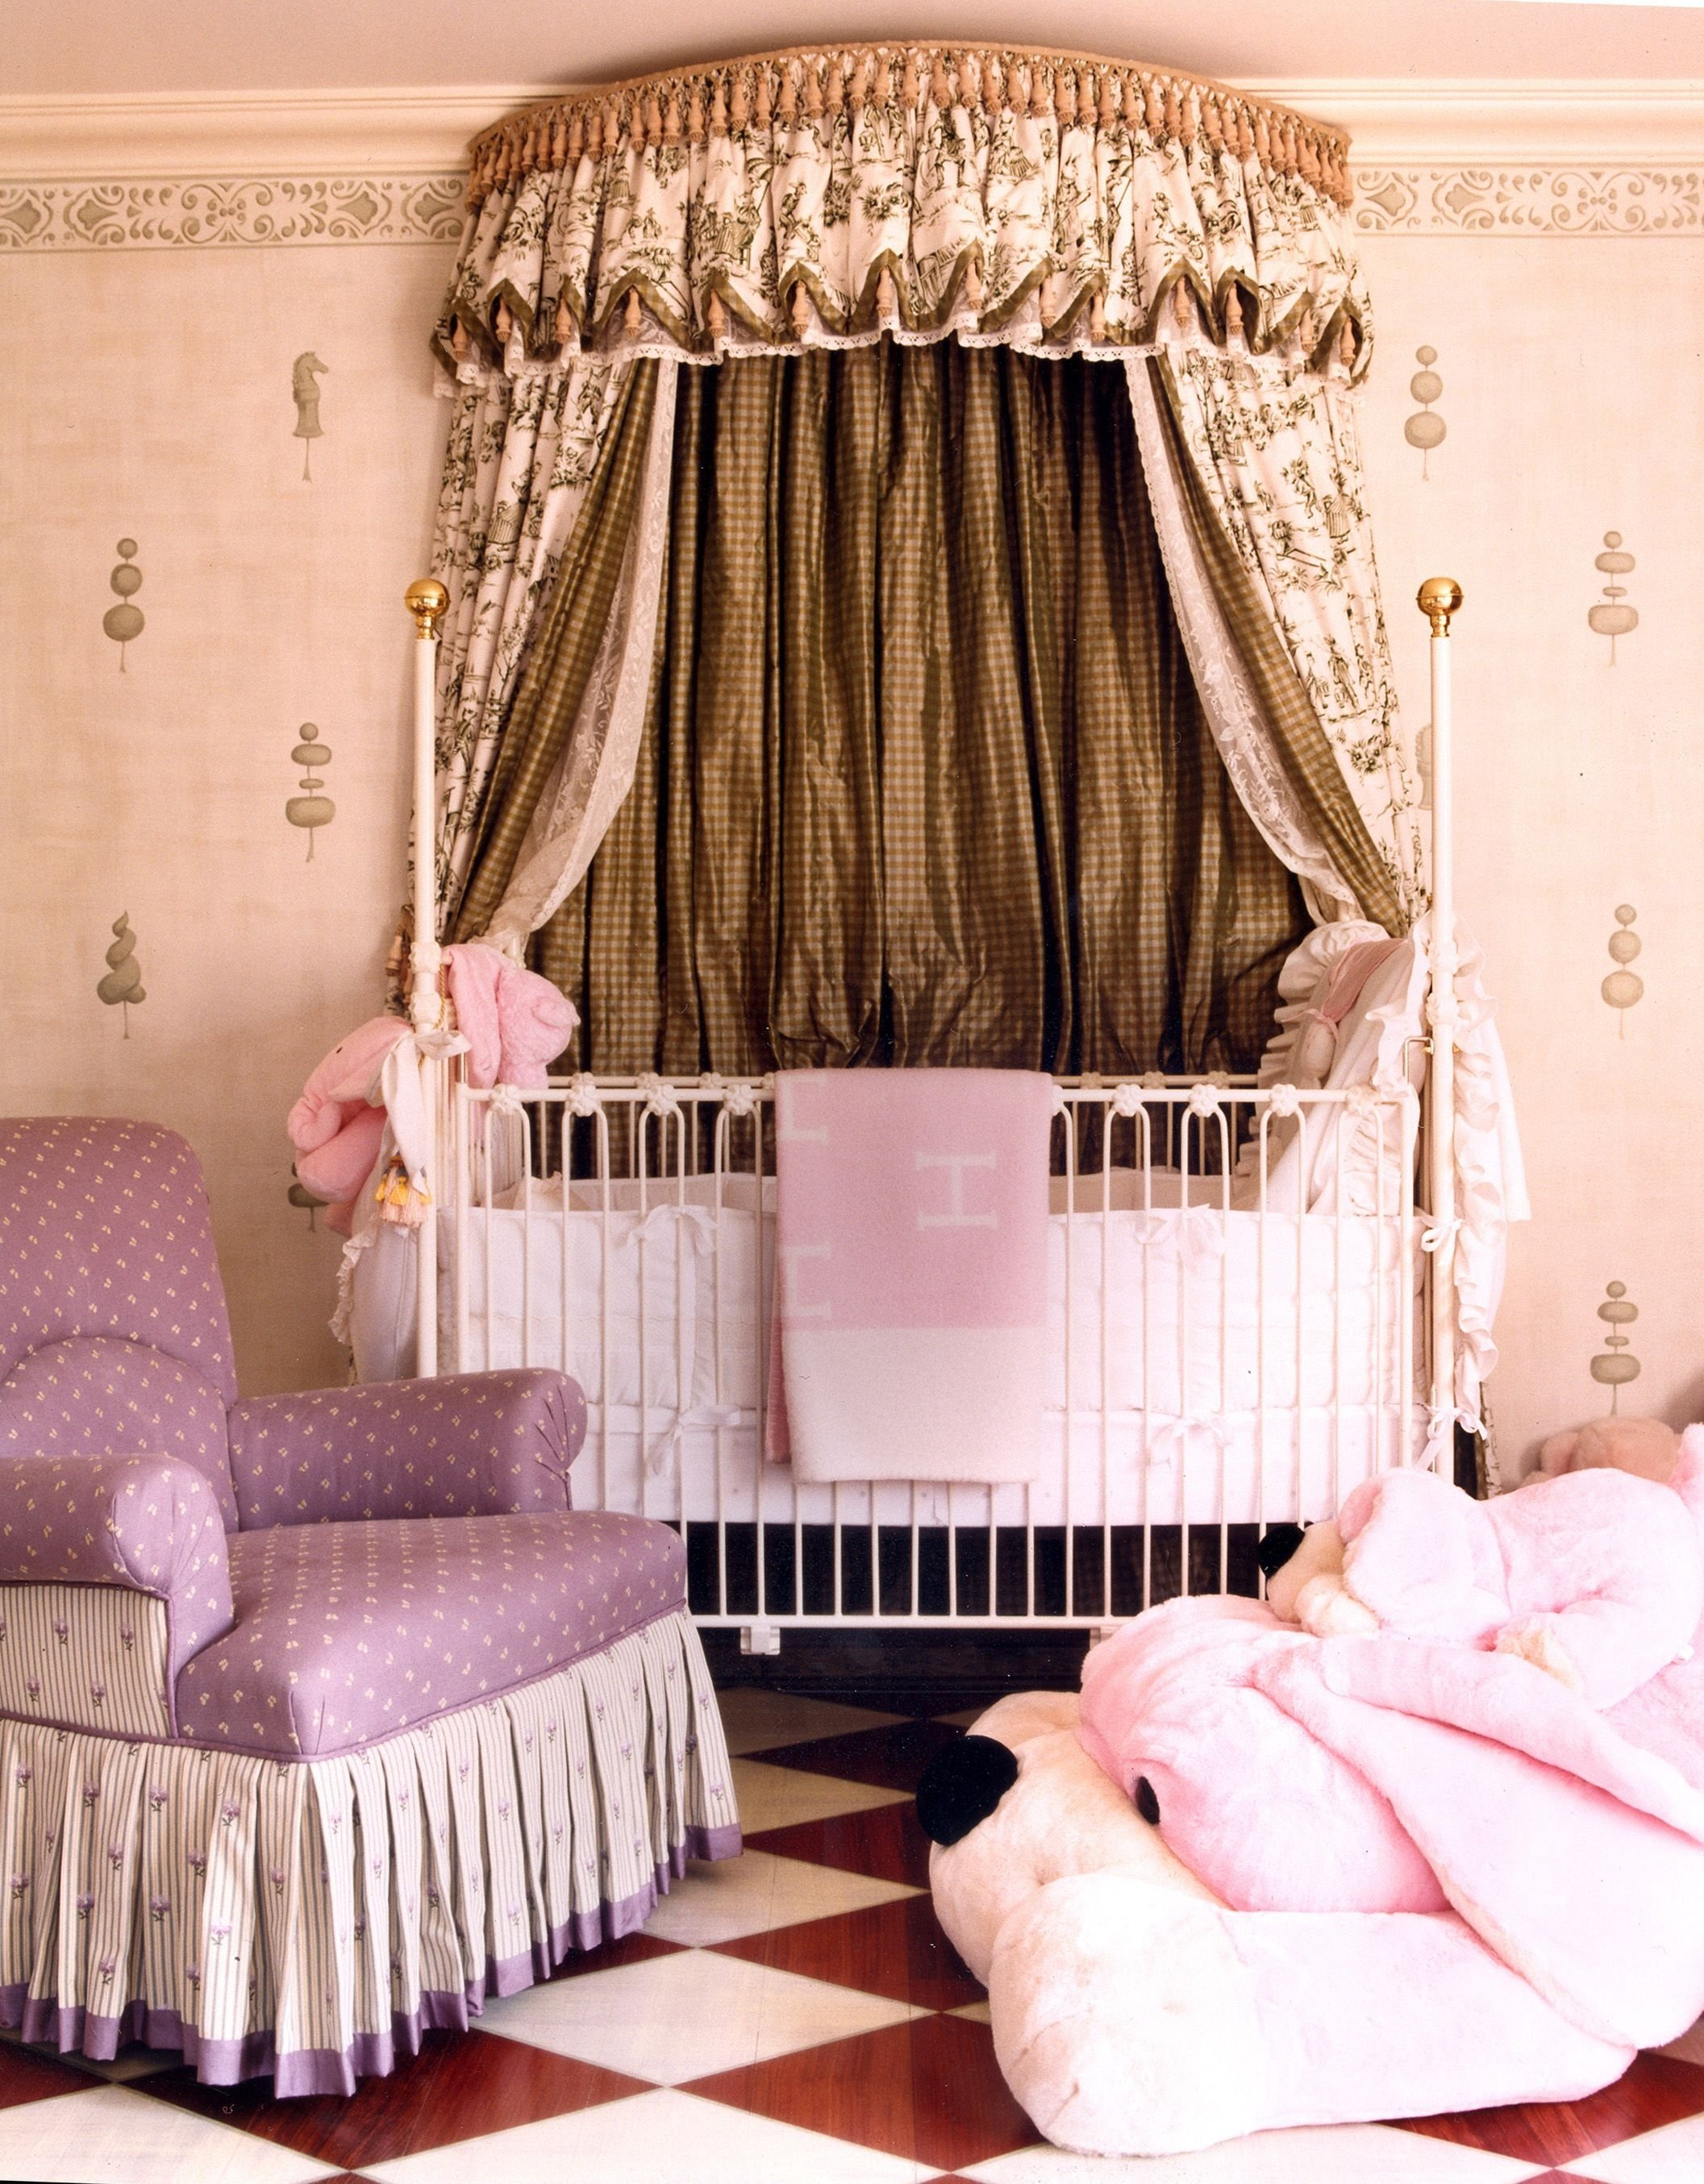 10 Cute Baby Room Ideas For A Girl 7 cute baby girl rooms nursery decorating ideas for baby girls